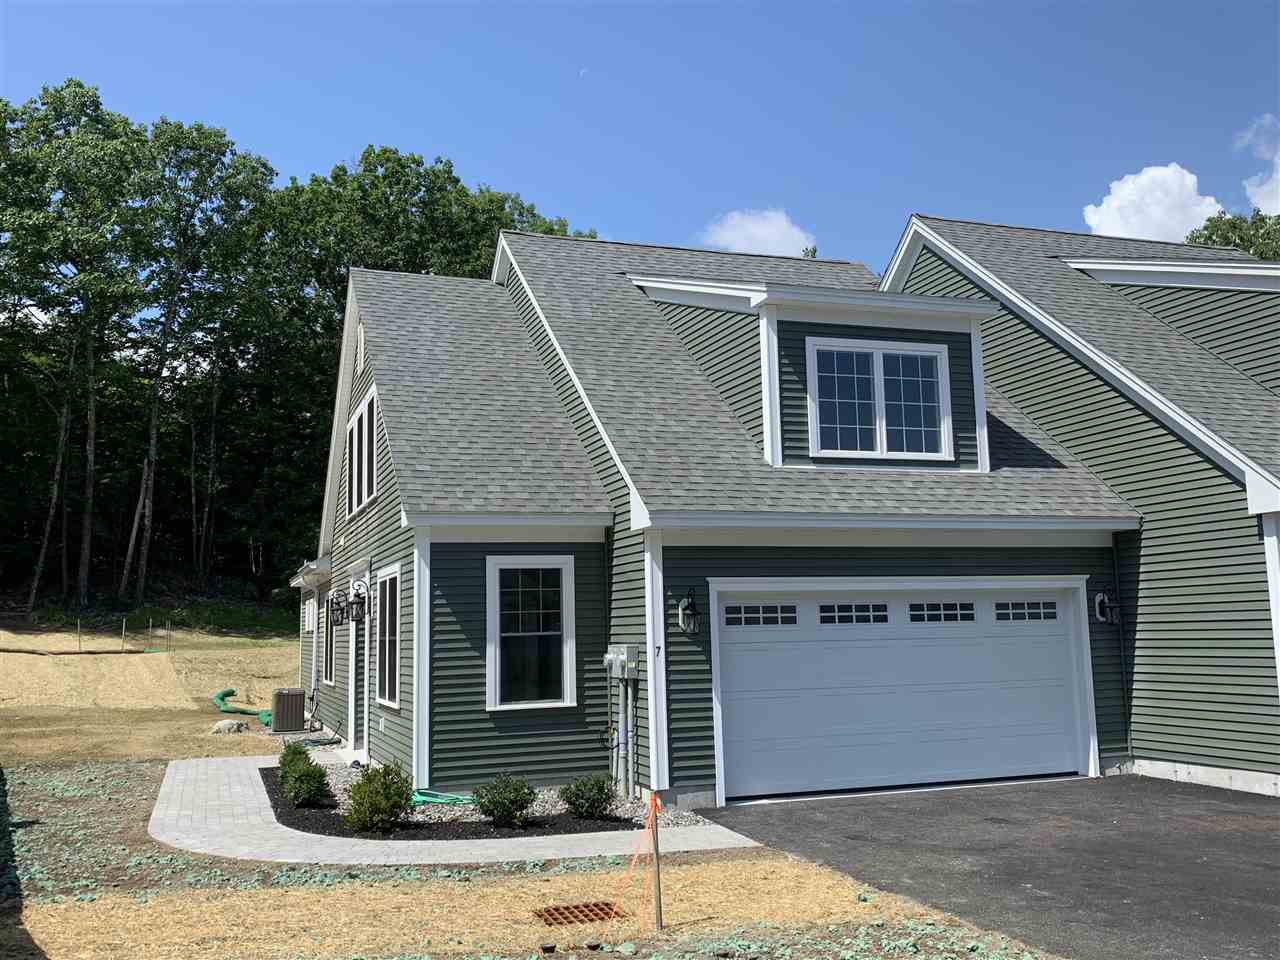 Photo of 7 Green Road Newmarket NH 03857